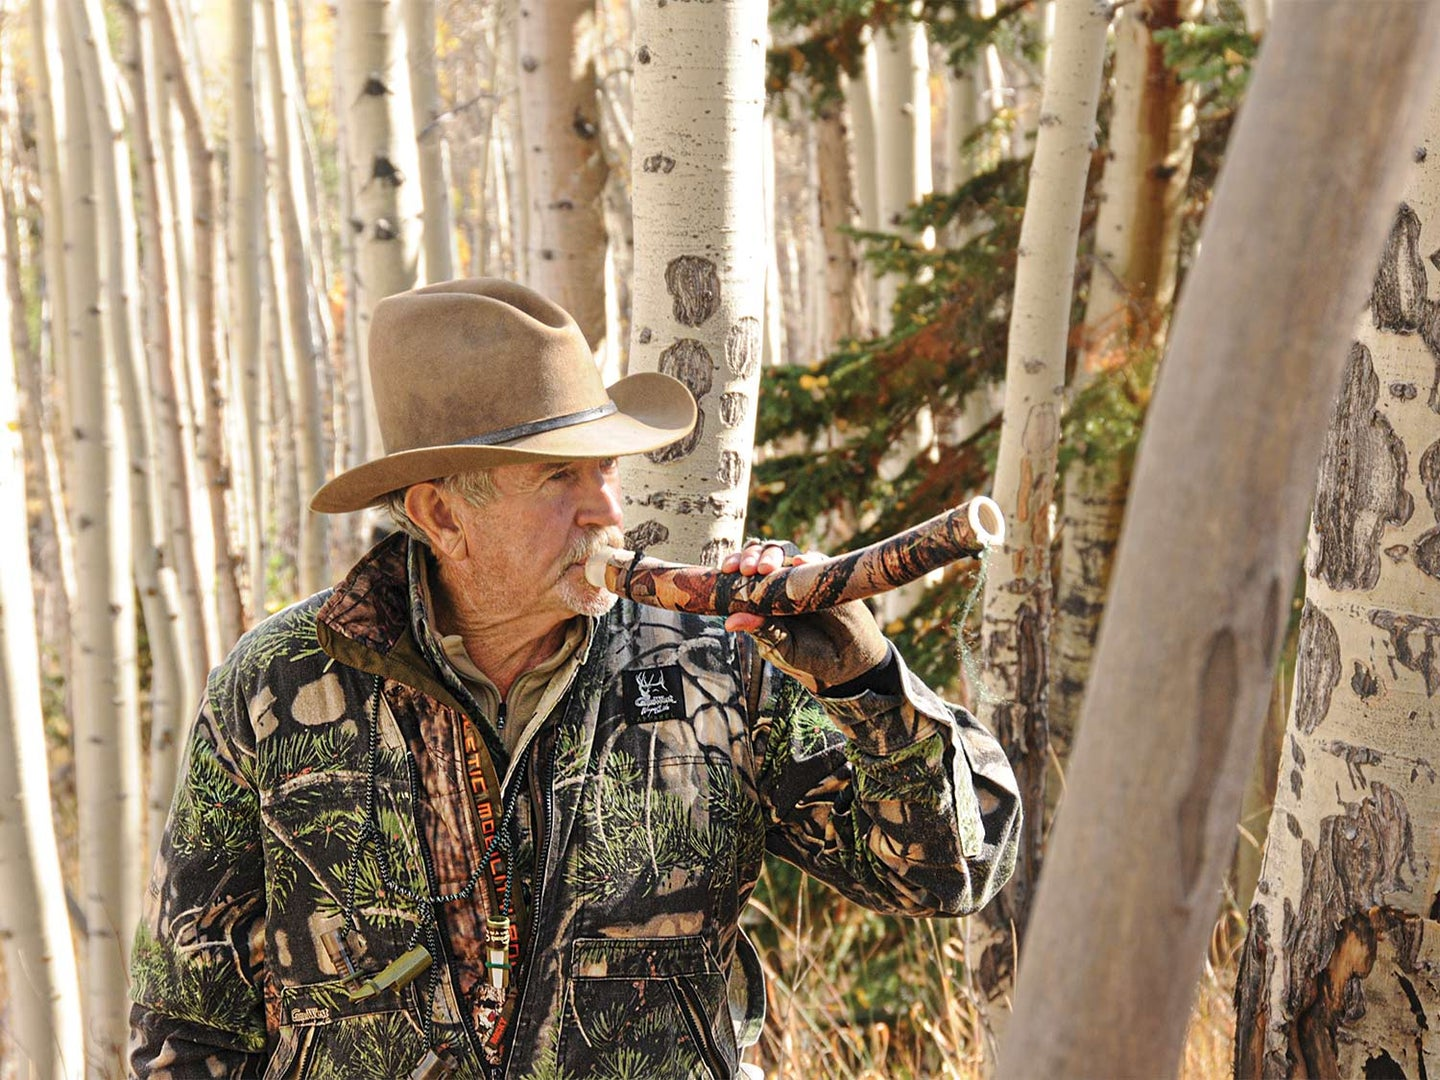 A hunter in camo and cowboy hat using a hunting call.